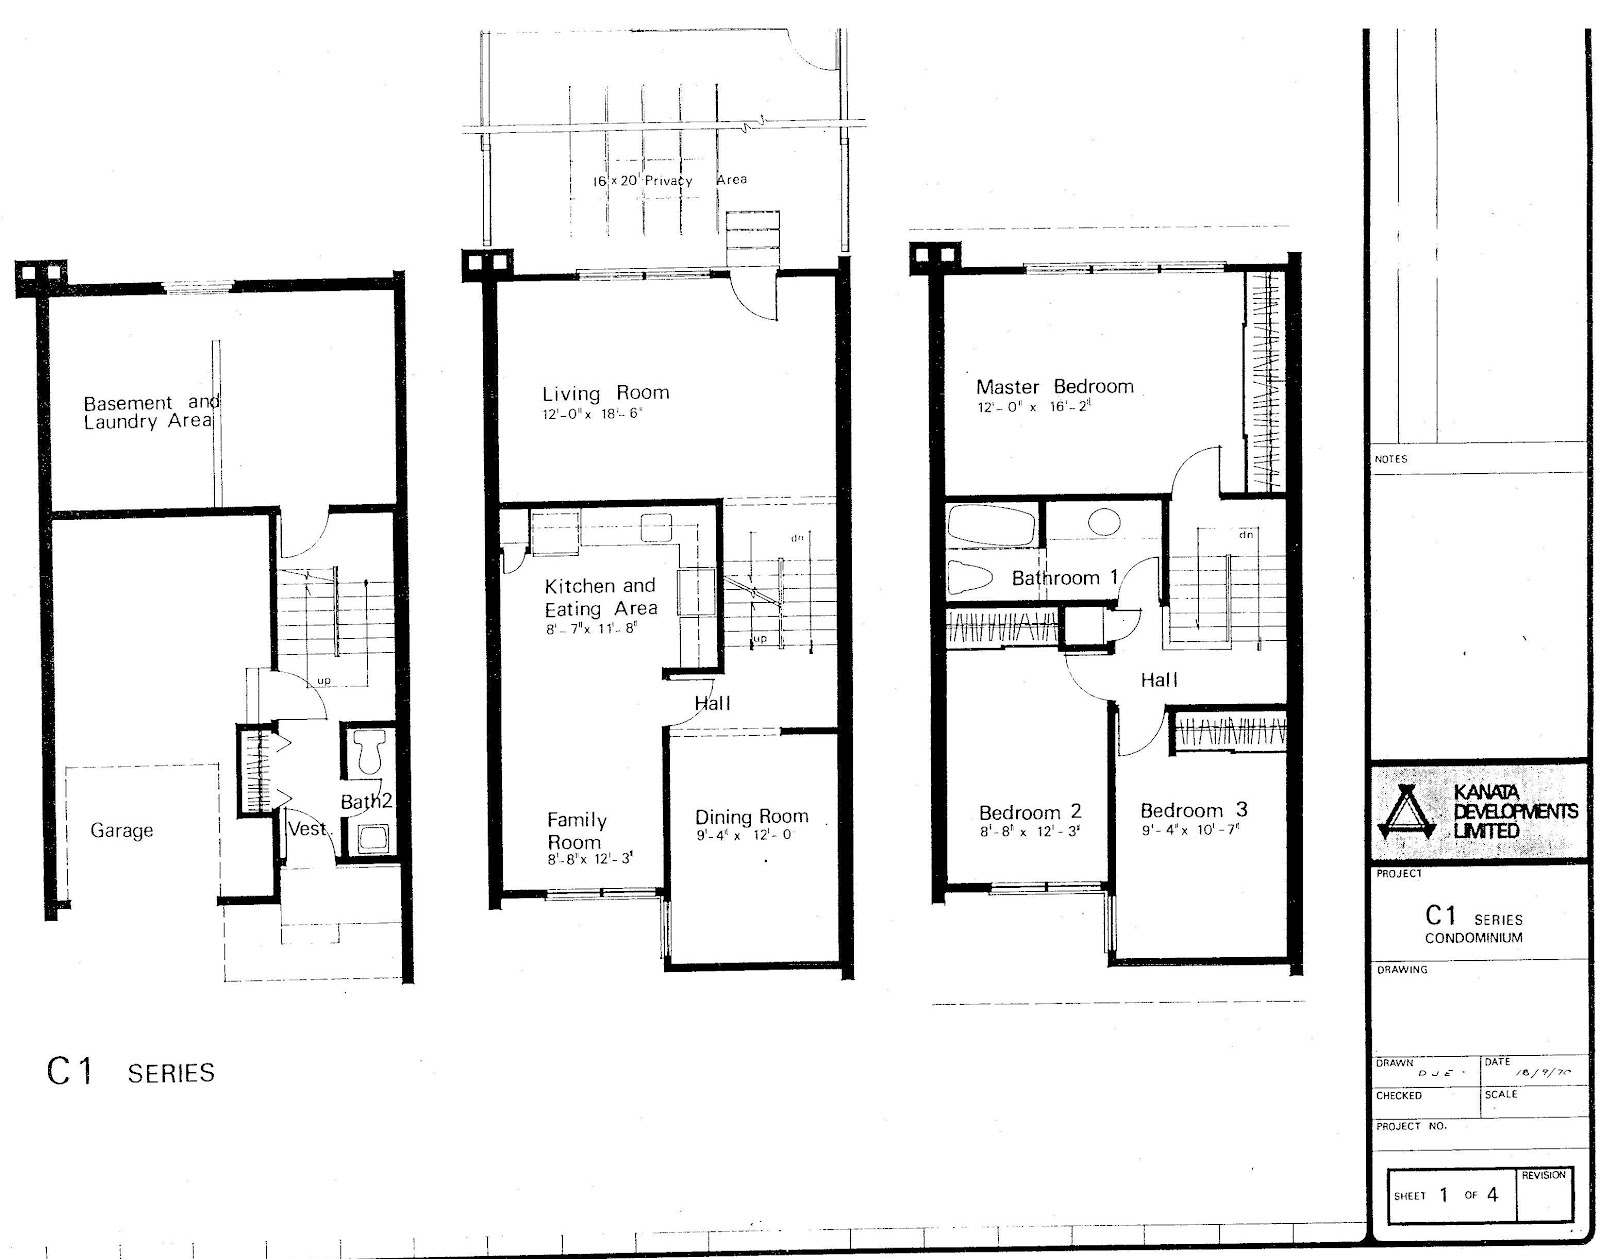 Simple 3 story townhome plans placement home plans for 1 story townhouse plans